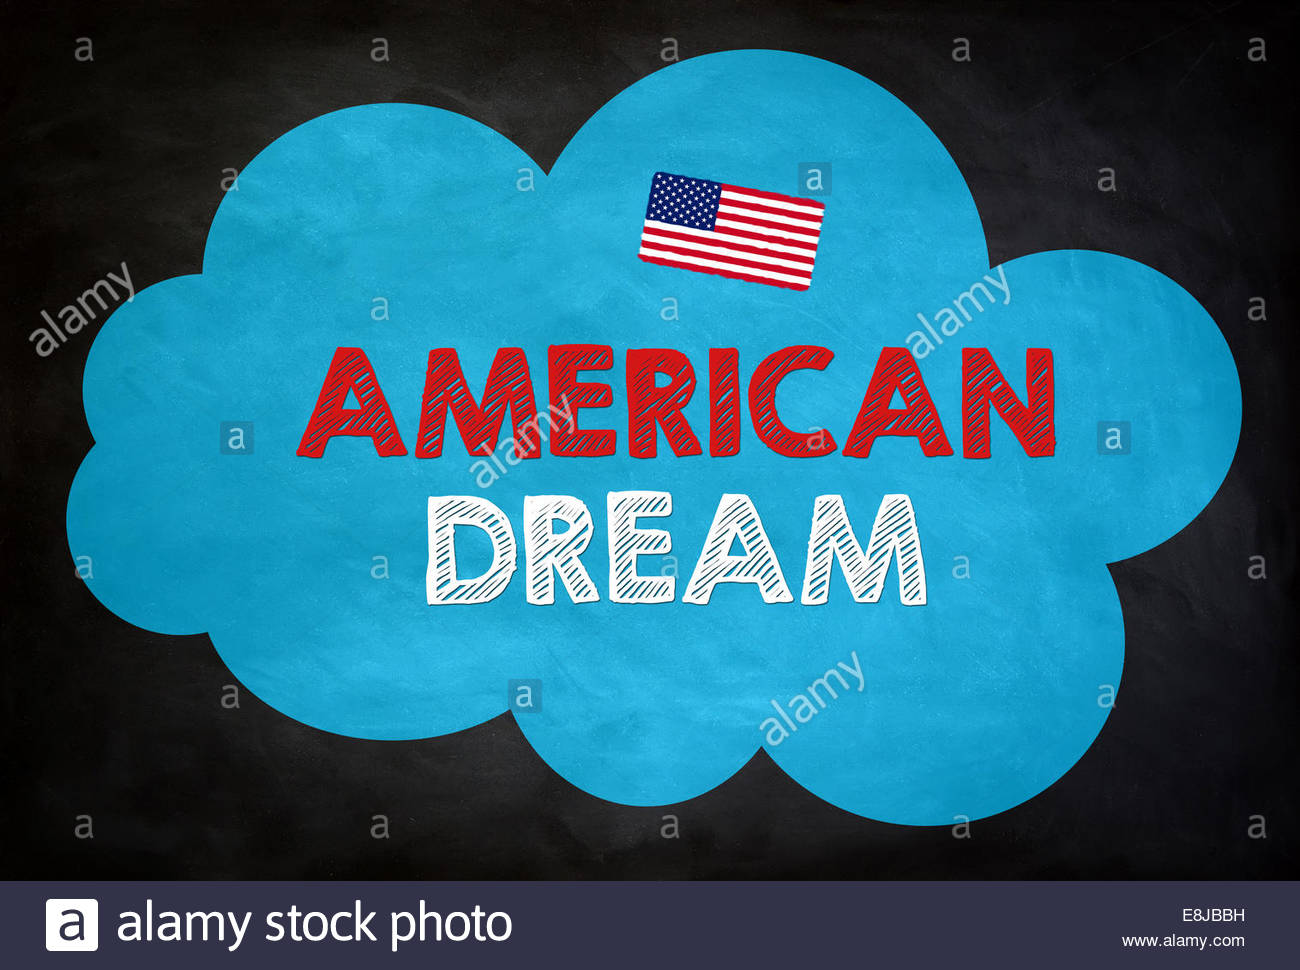 AMERICAN DREAM - Tafel-Konzept Stockbild